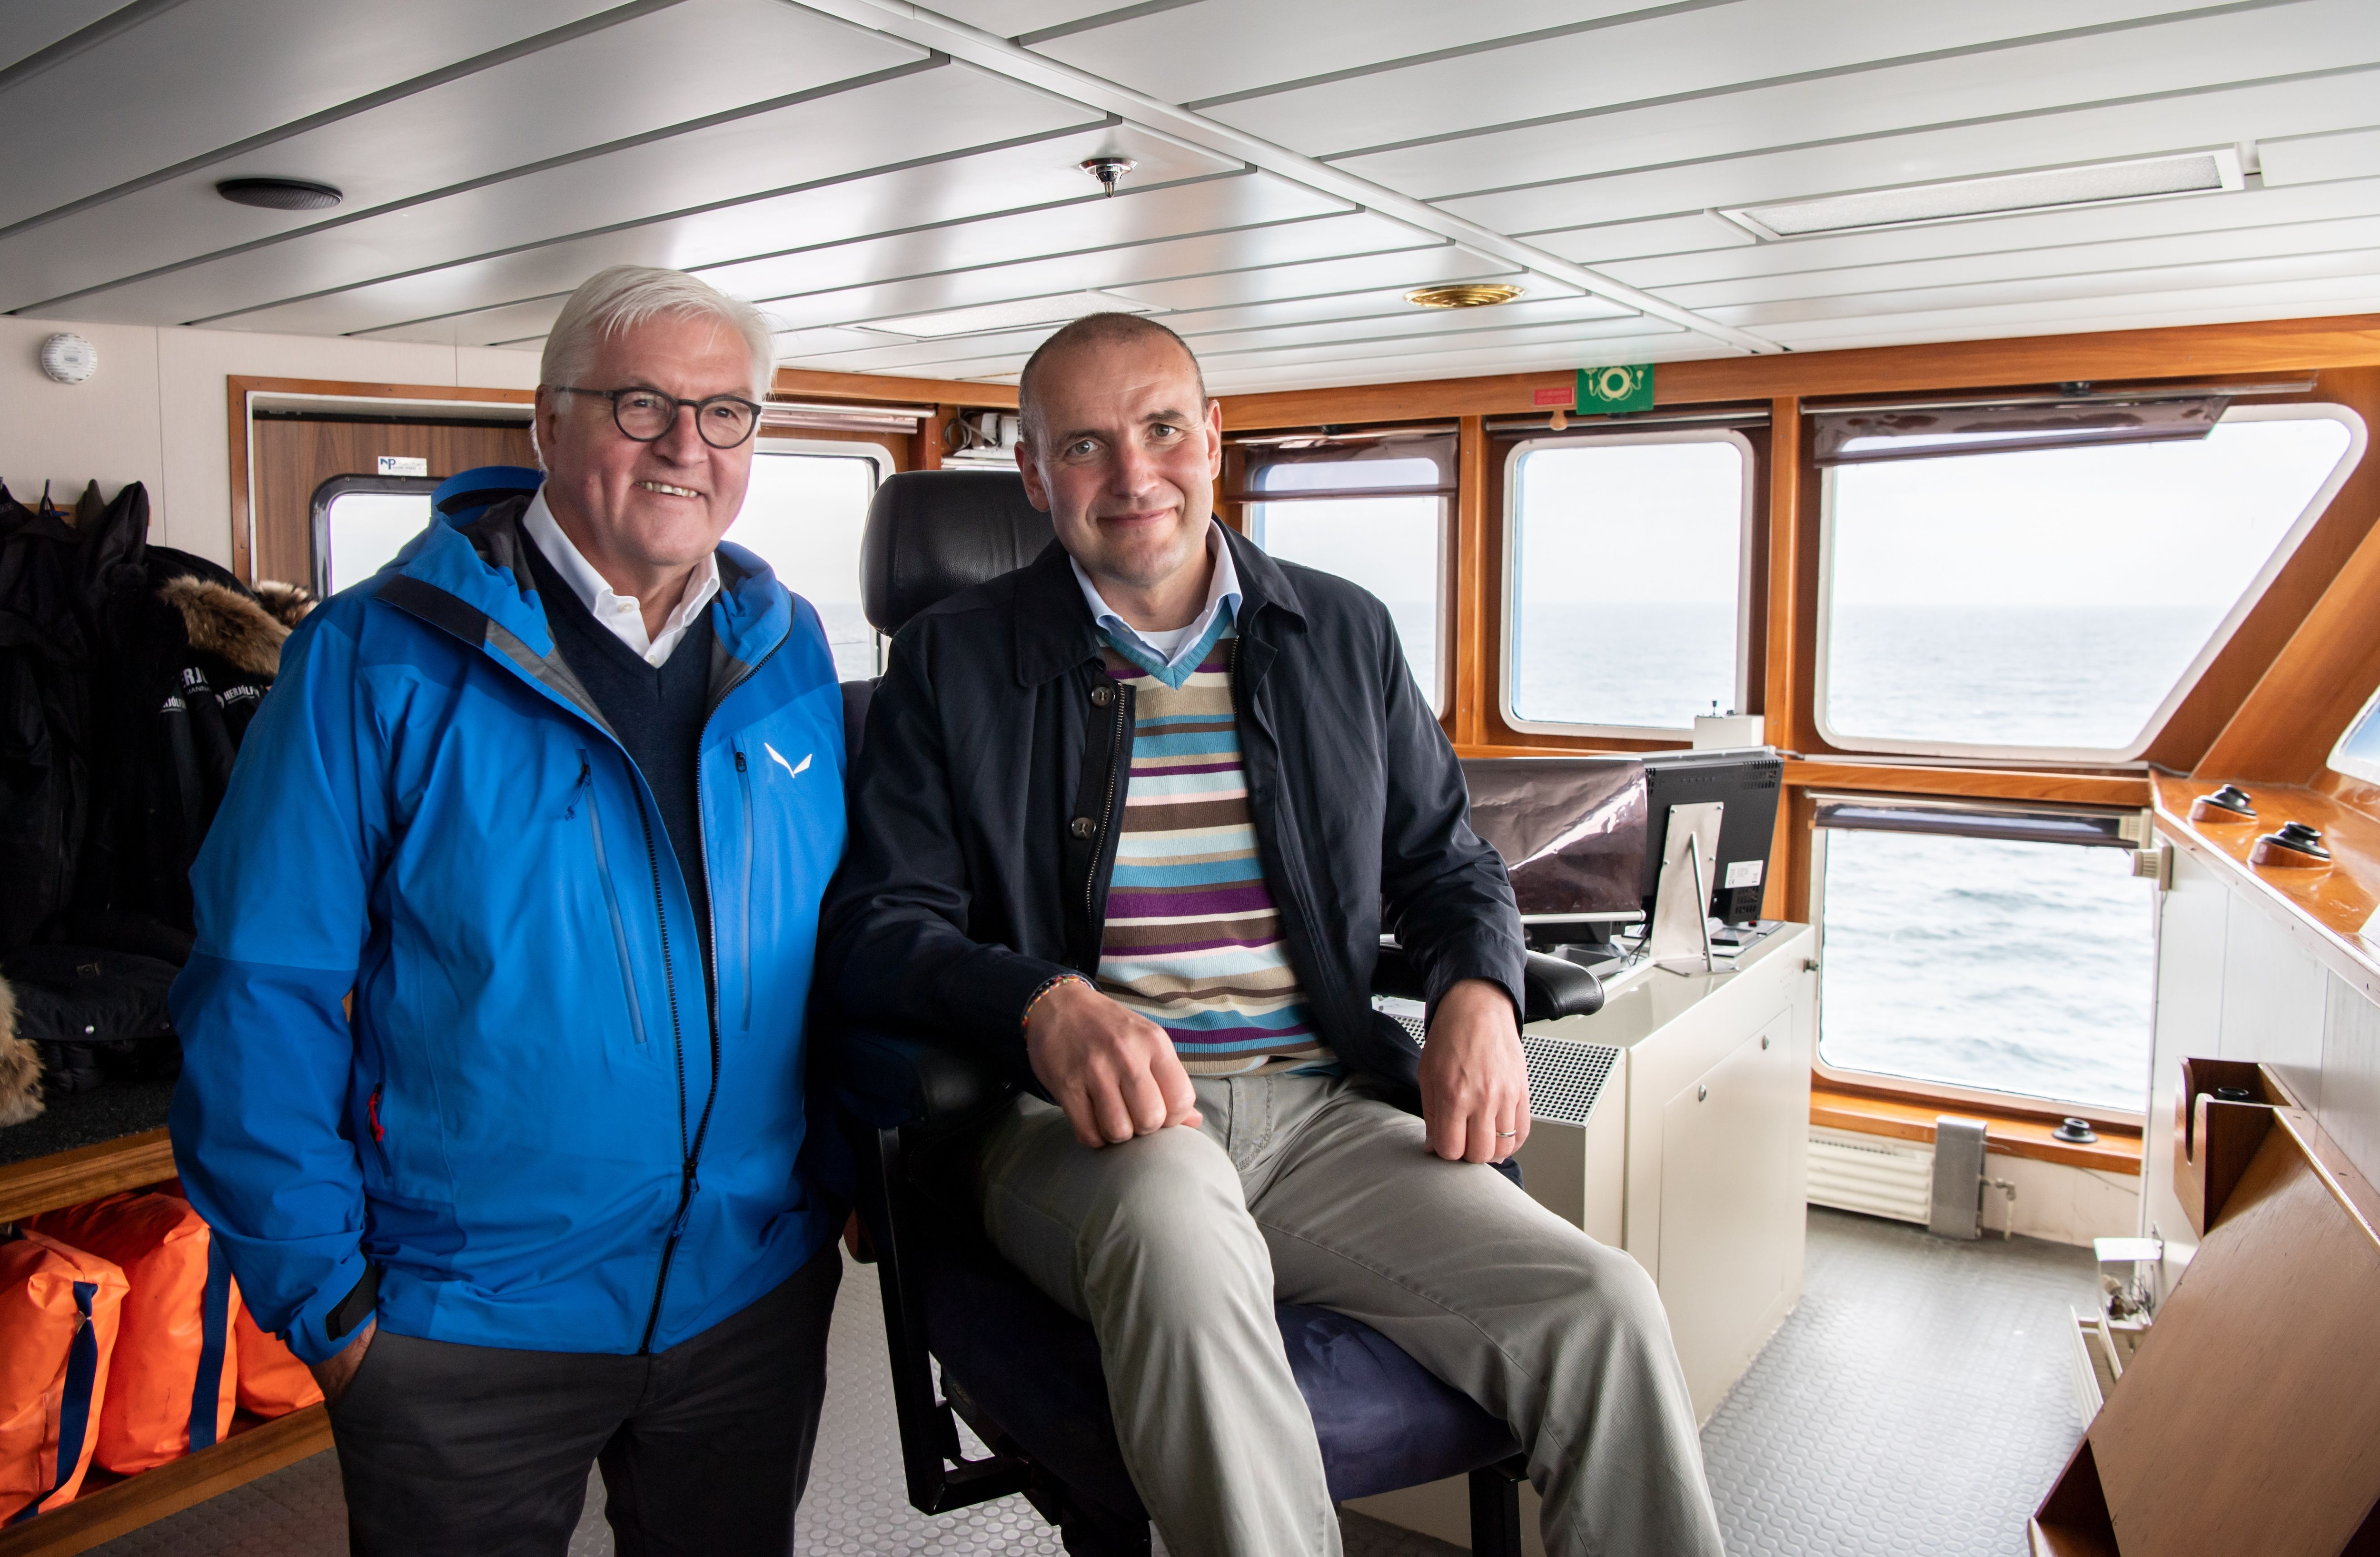 13/06/2019 13 June 2019, Iceland, Reykjavik: German President Frank-Walter Steinmeier (L) and Gudni Thorlacius Johannesson President of Iceland, take a ferry to Heimaey Island on the Westman Islands. Steinmeier and his wife are on a two-day state visit to Iceland. Photo: Bernd von Jutrczenka/dpa POLITICA INTERNACIONAL Bernd von Jutrczenka/dpa